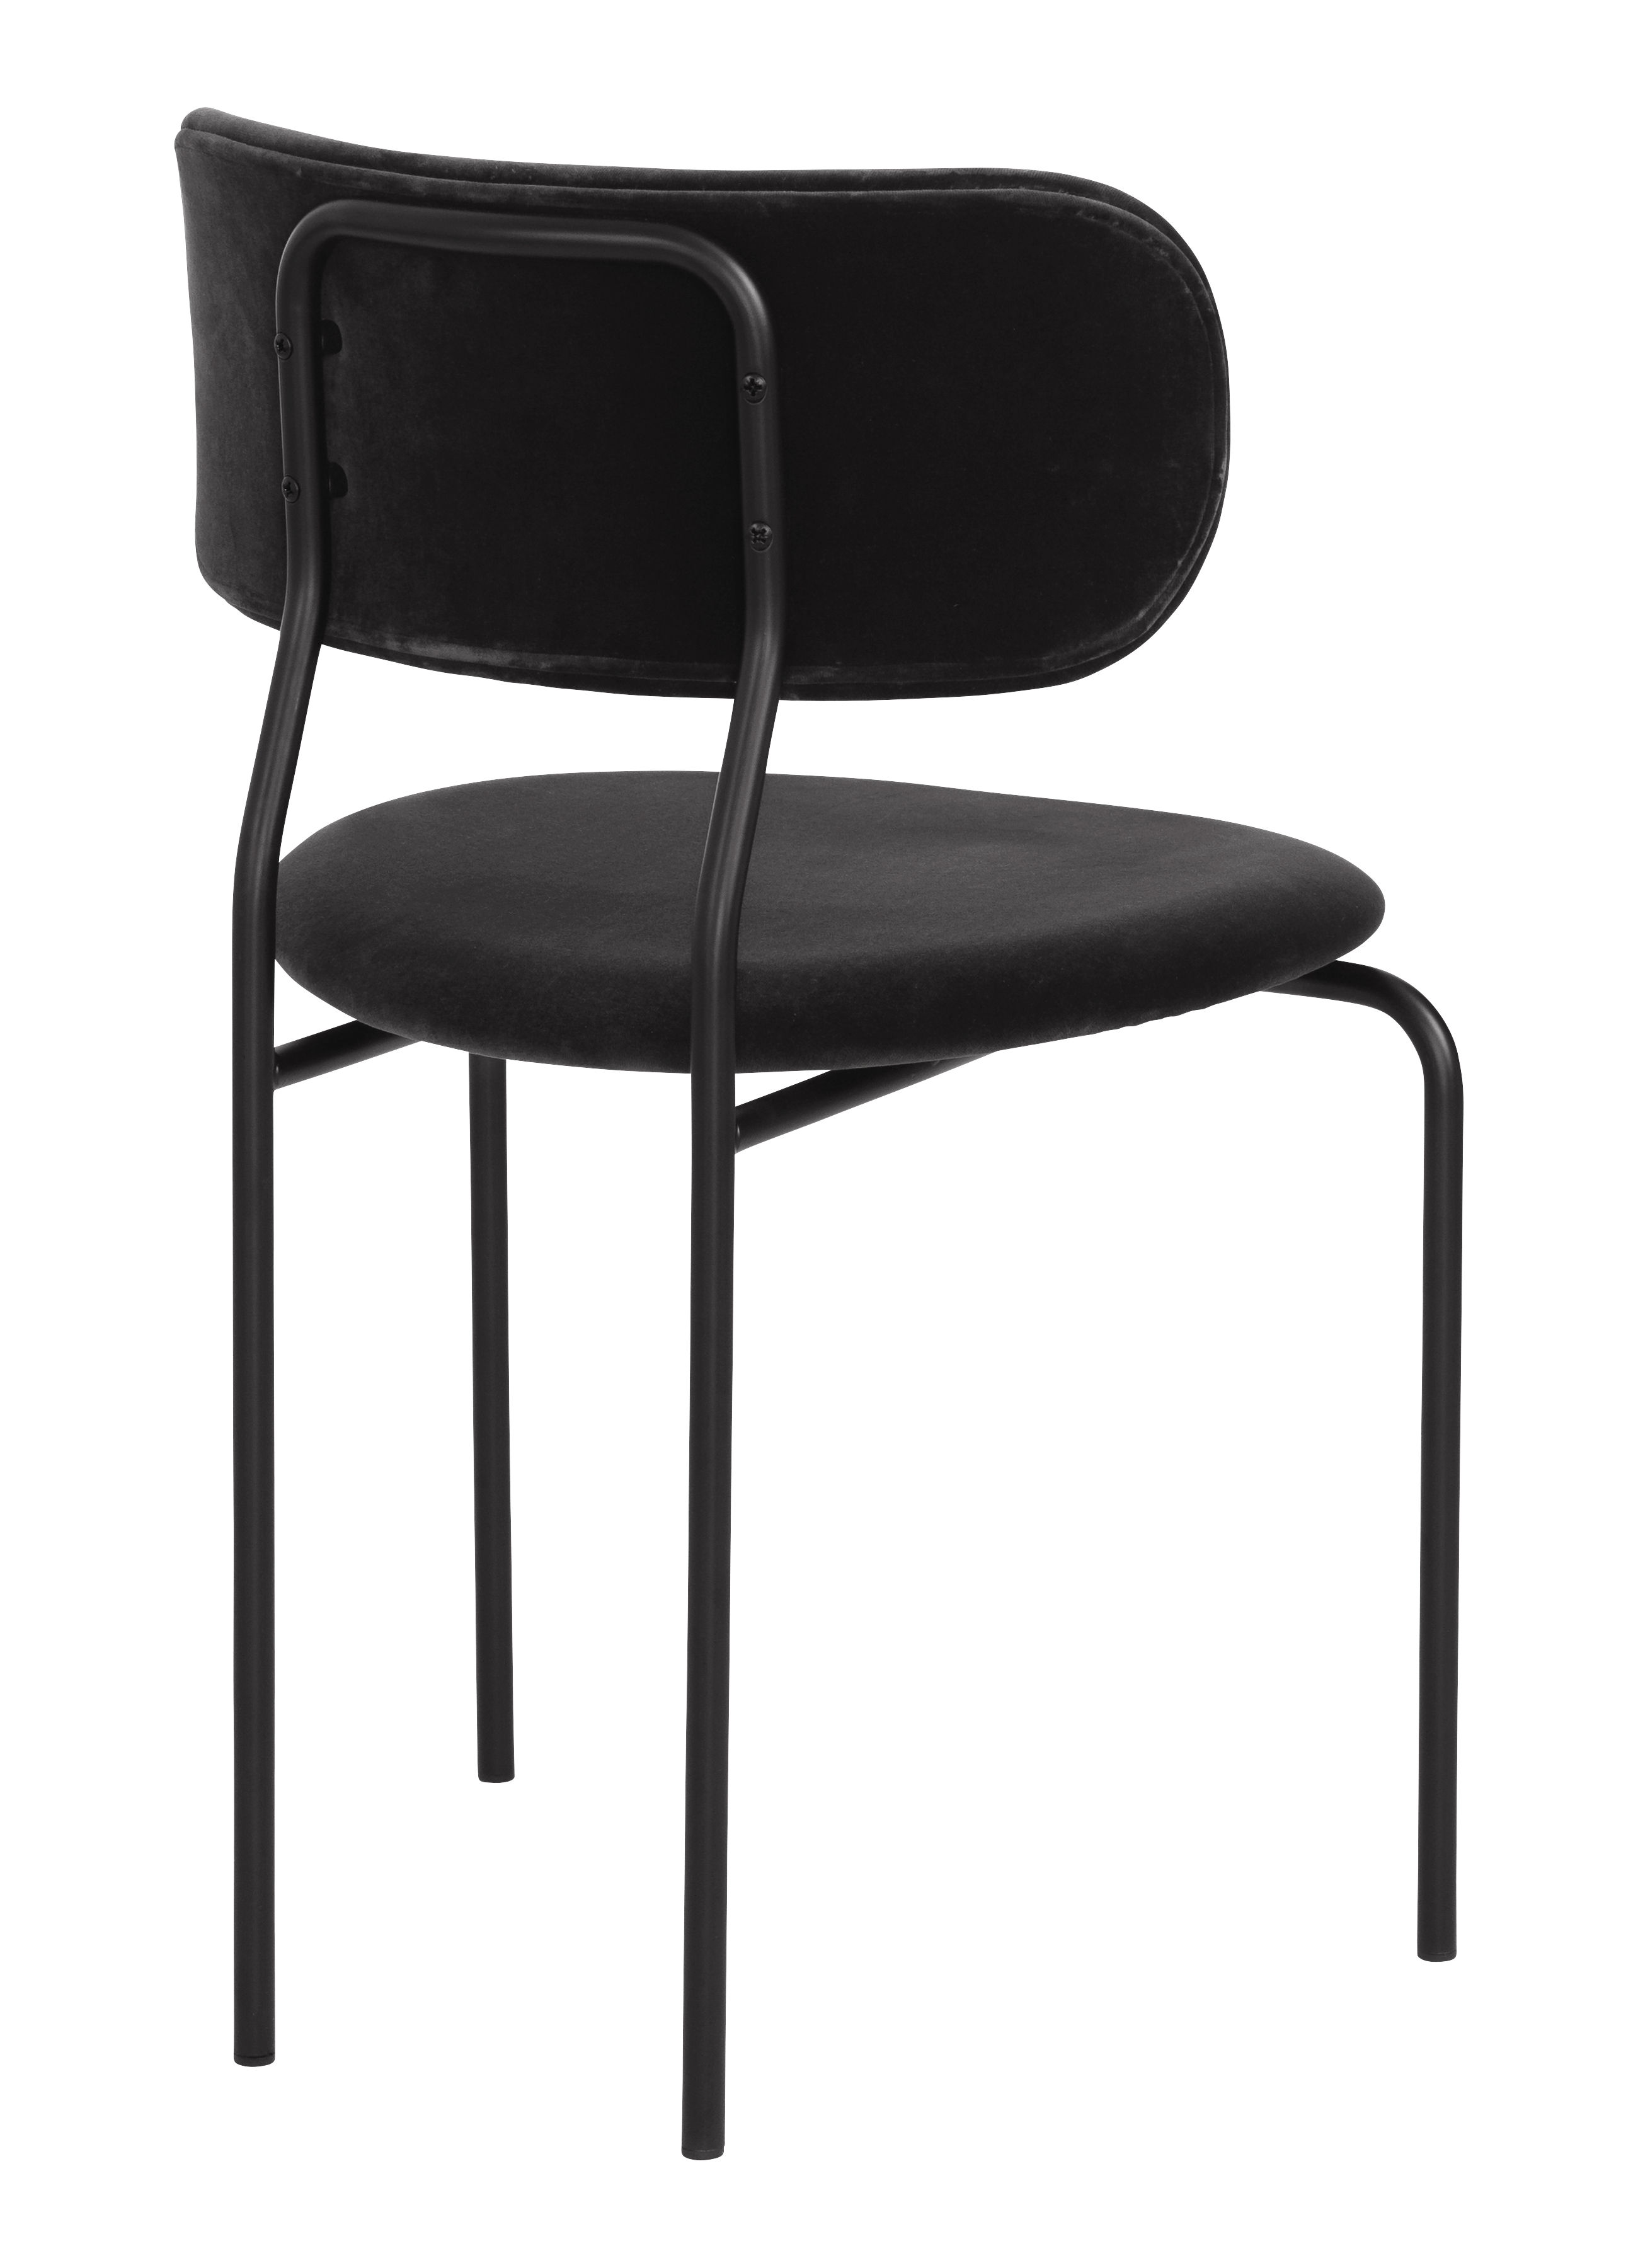 coco padded chair fabric black velvet by gubi. Black Bedroom Furniture Sets. Home Design Ideas